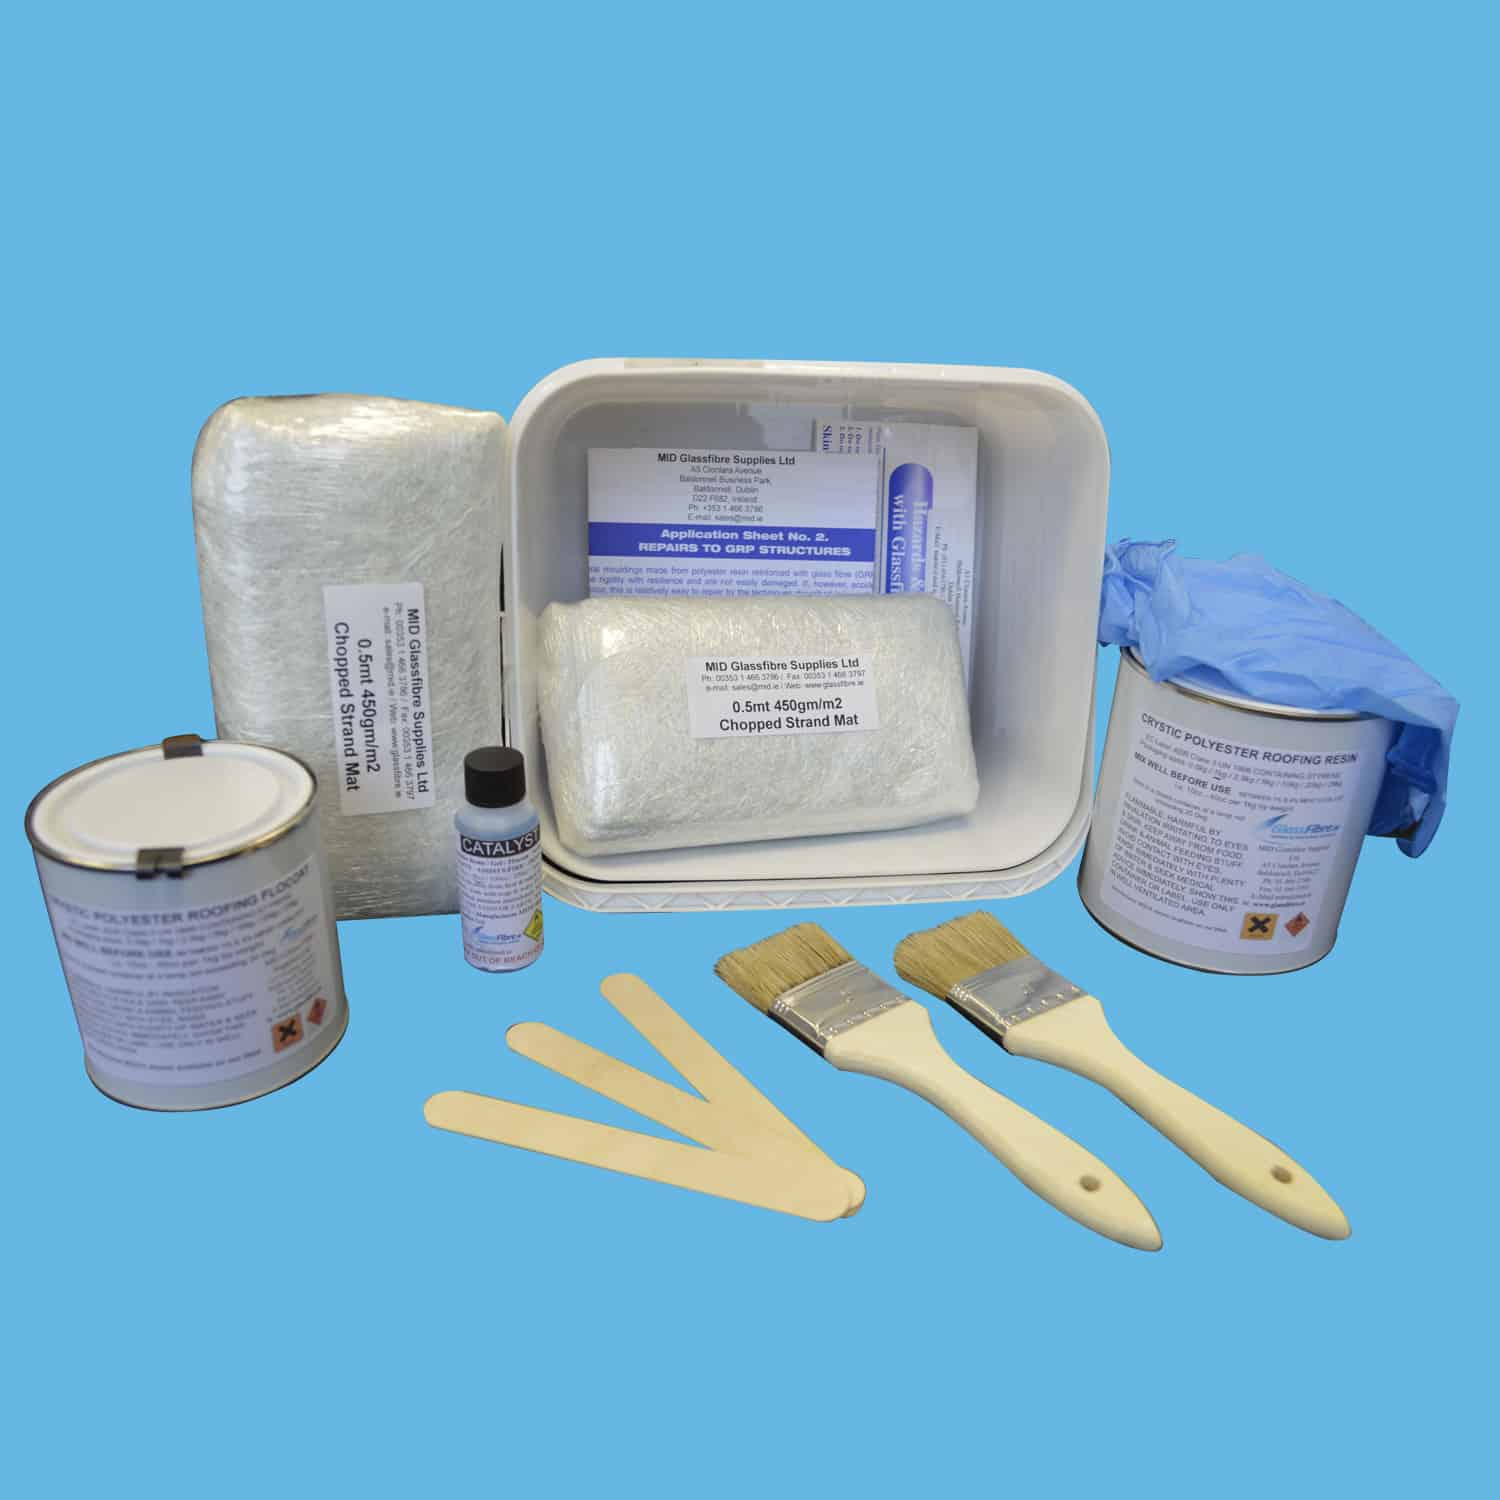 1sq meter – Roofing Repair Kit